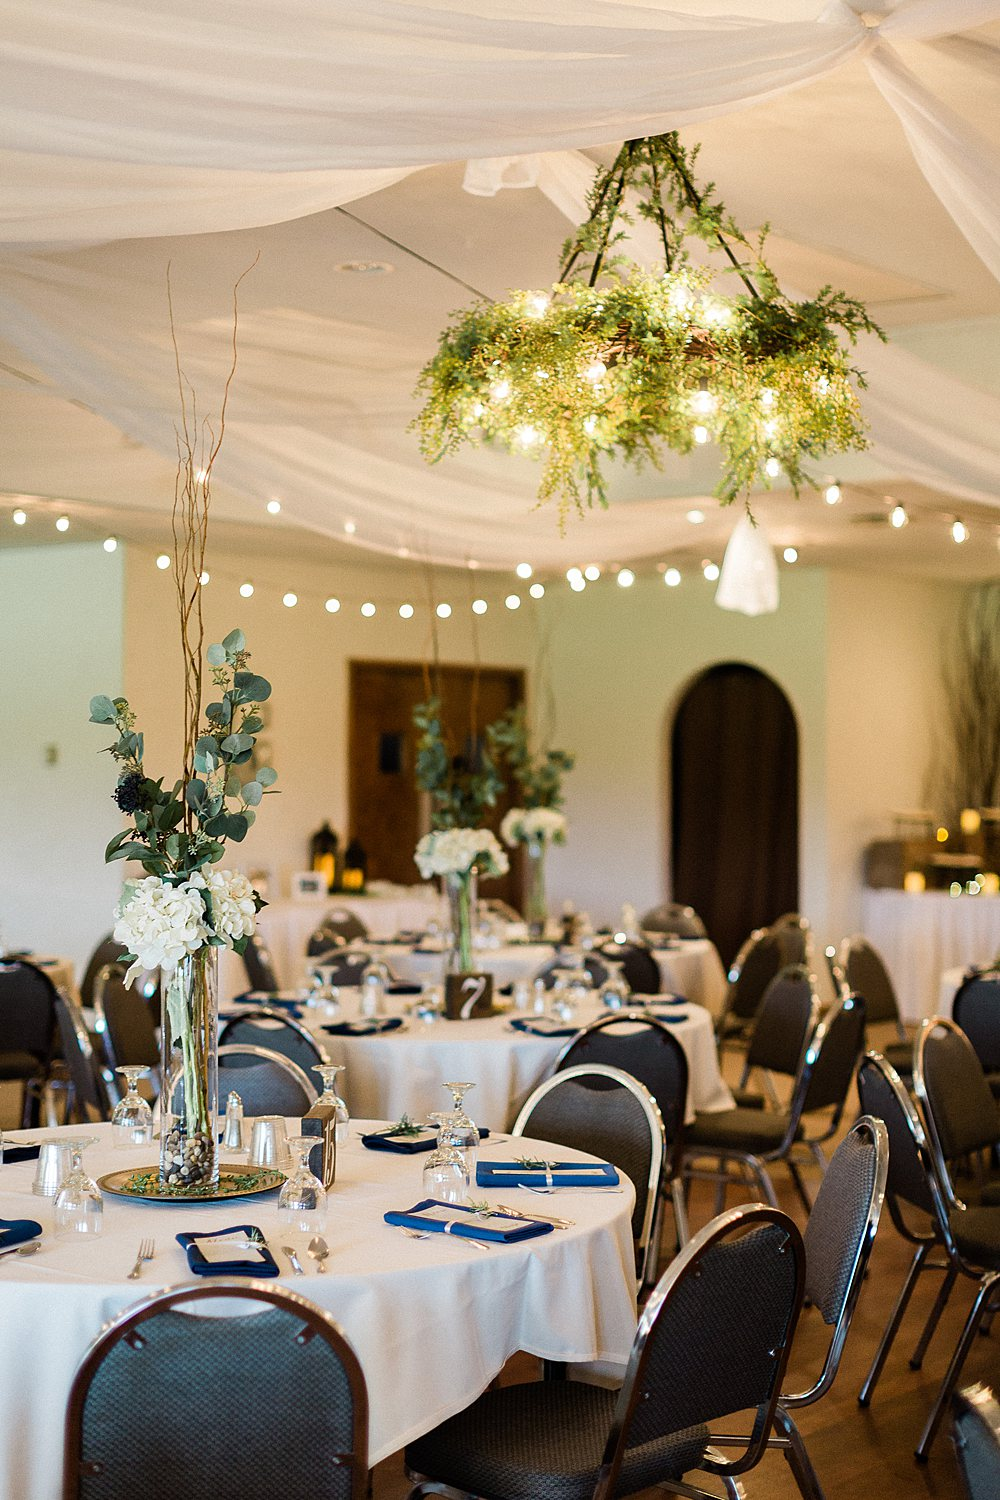 North_Central_Wisconsin_Event_Wedding_Venues_Fall_Weddings_The_Bailiwick_Venue_James-Stokes-Photography052.jpg